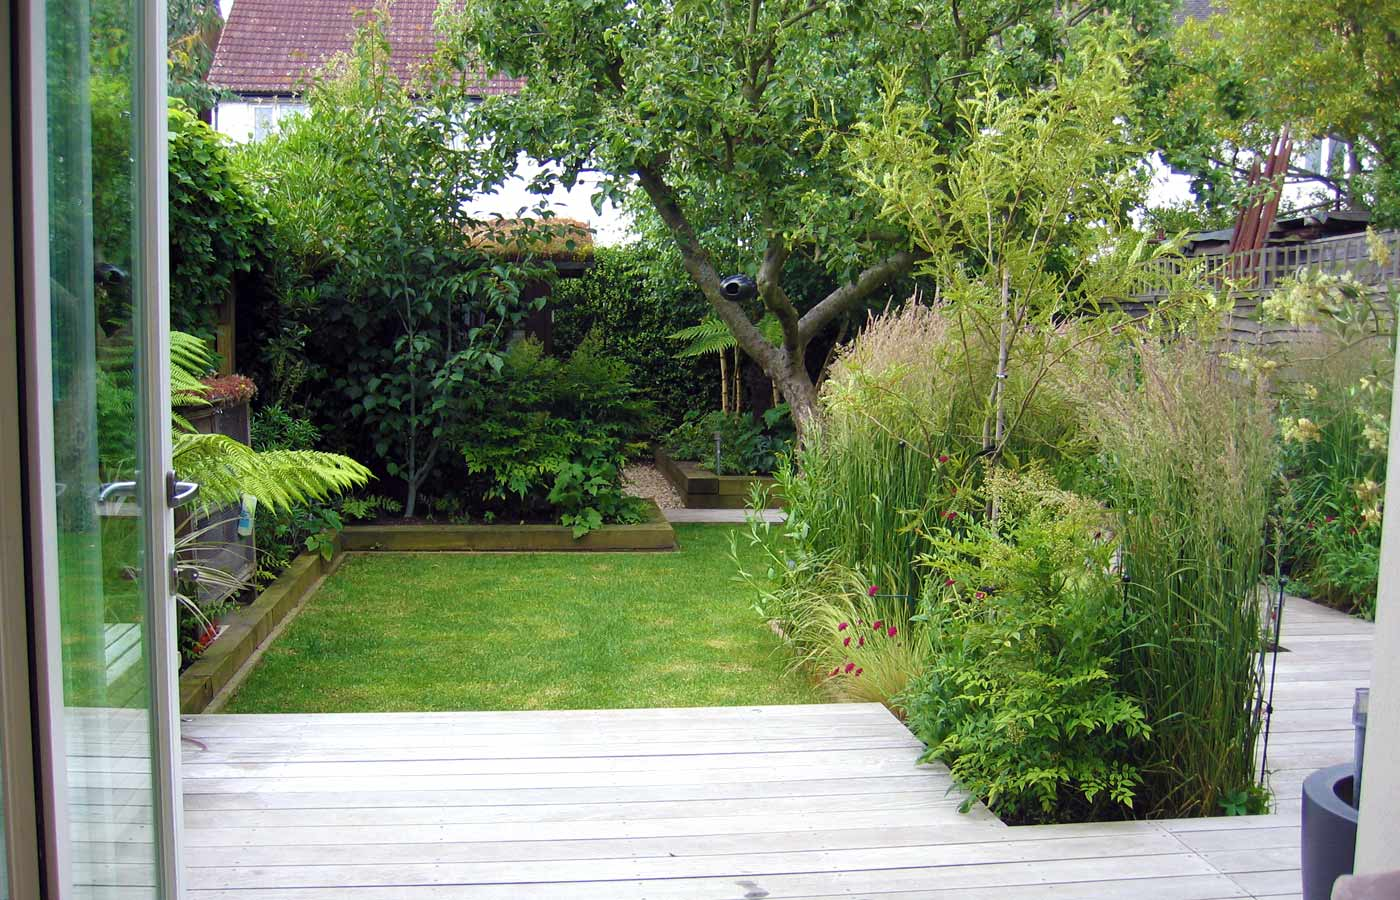 Pin small garden decking ideas image search results on for Small garden design ideas decking